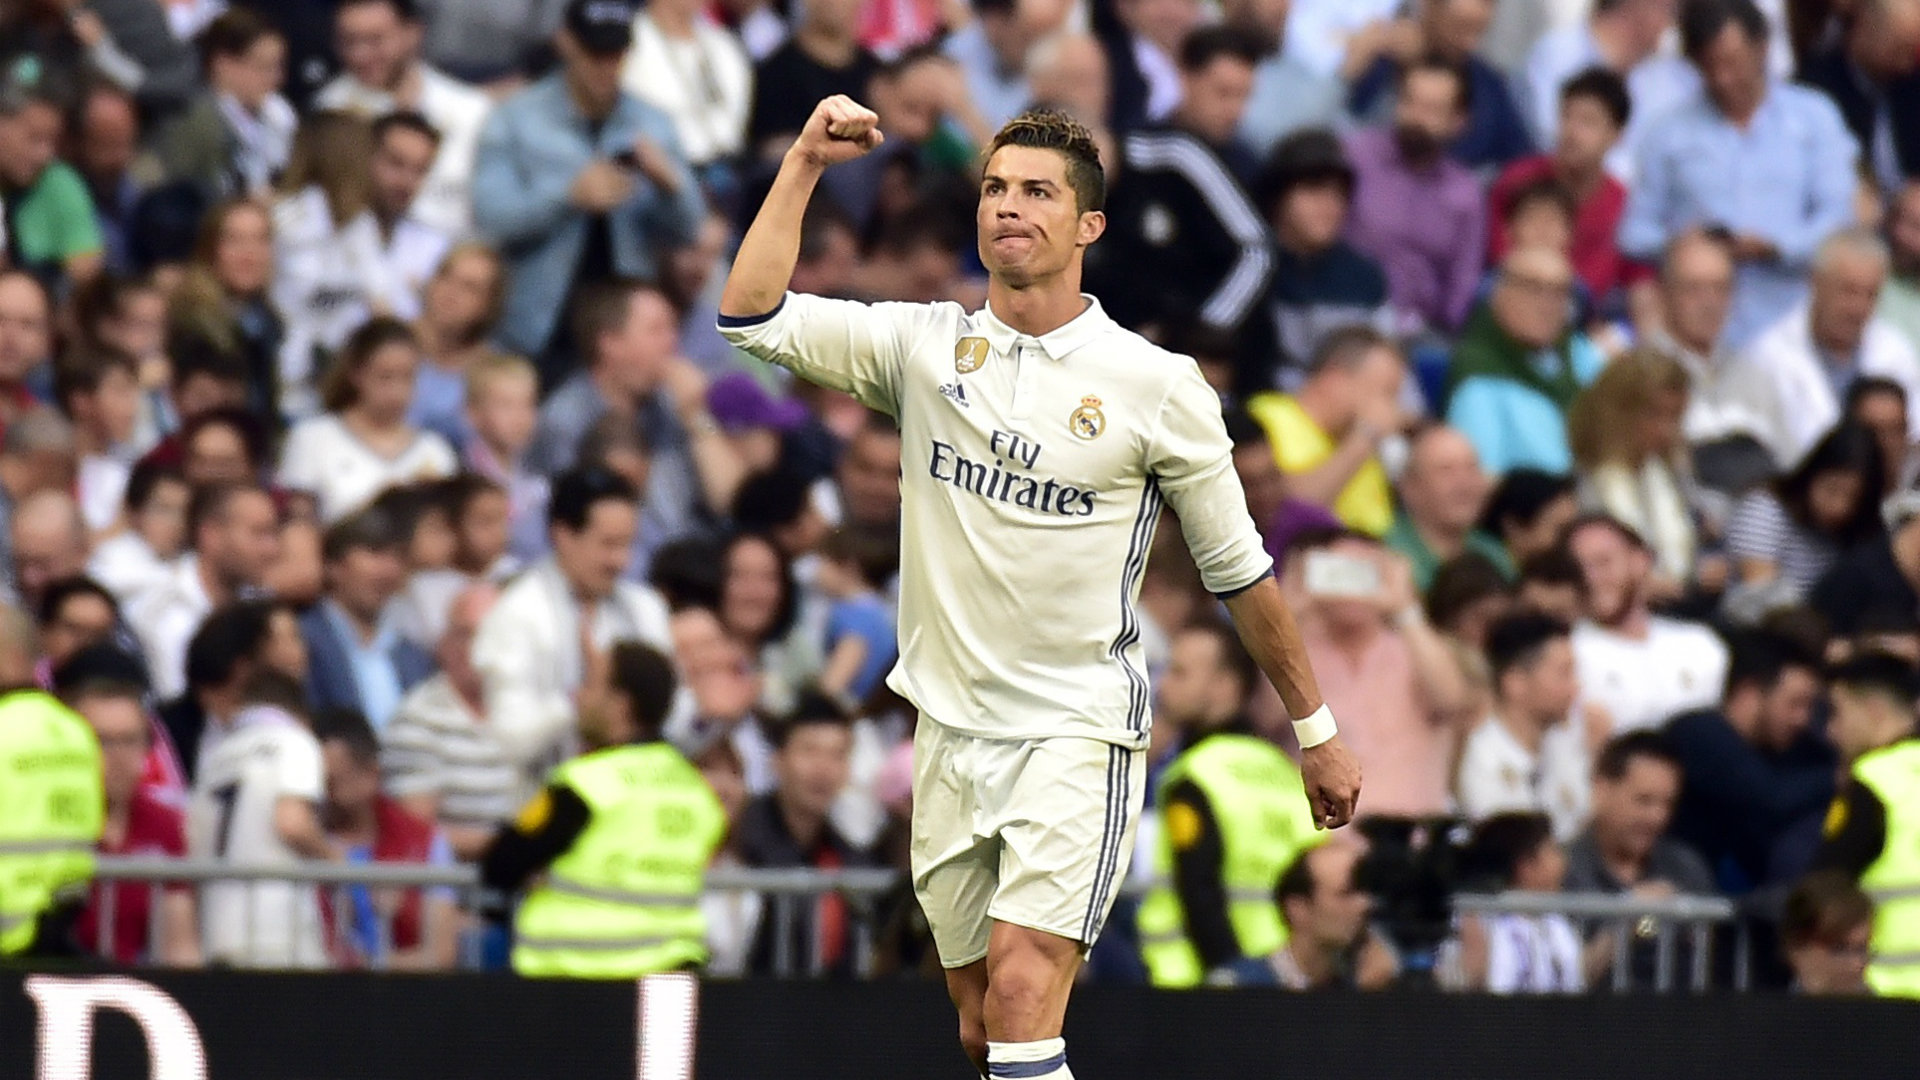 Real Madrid, Barca set up final day title showdown